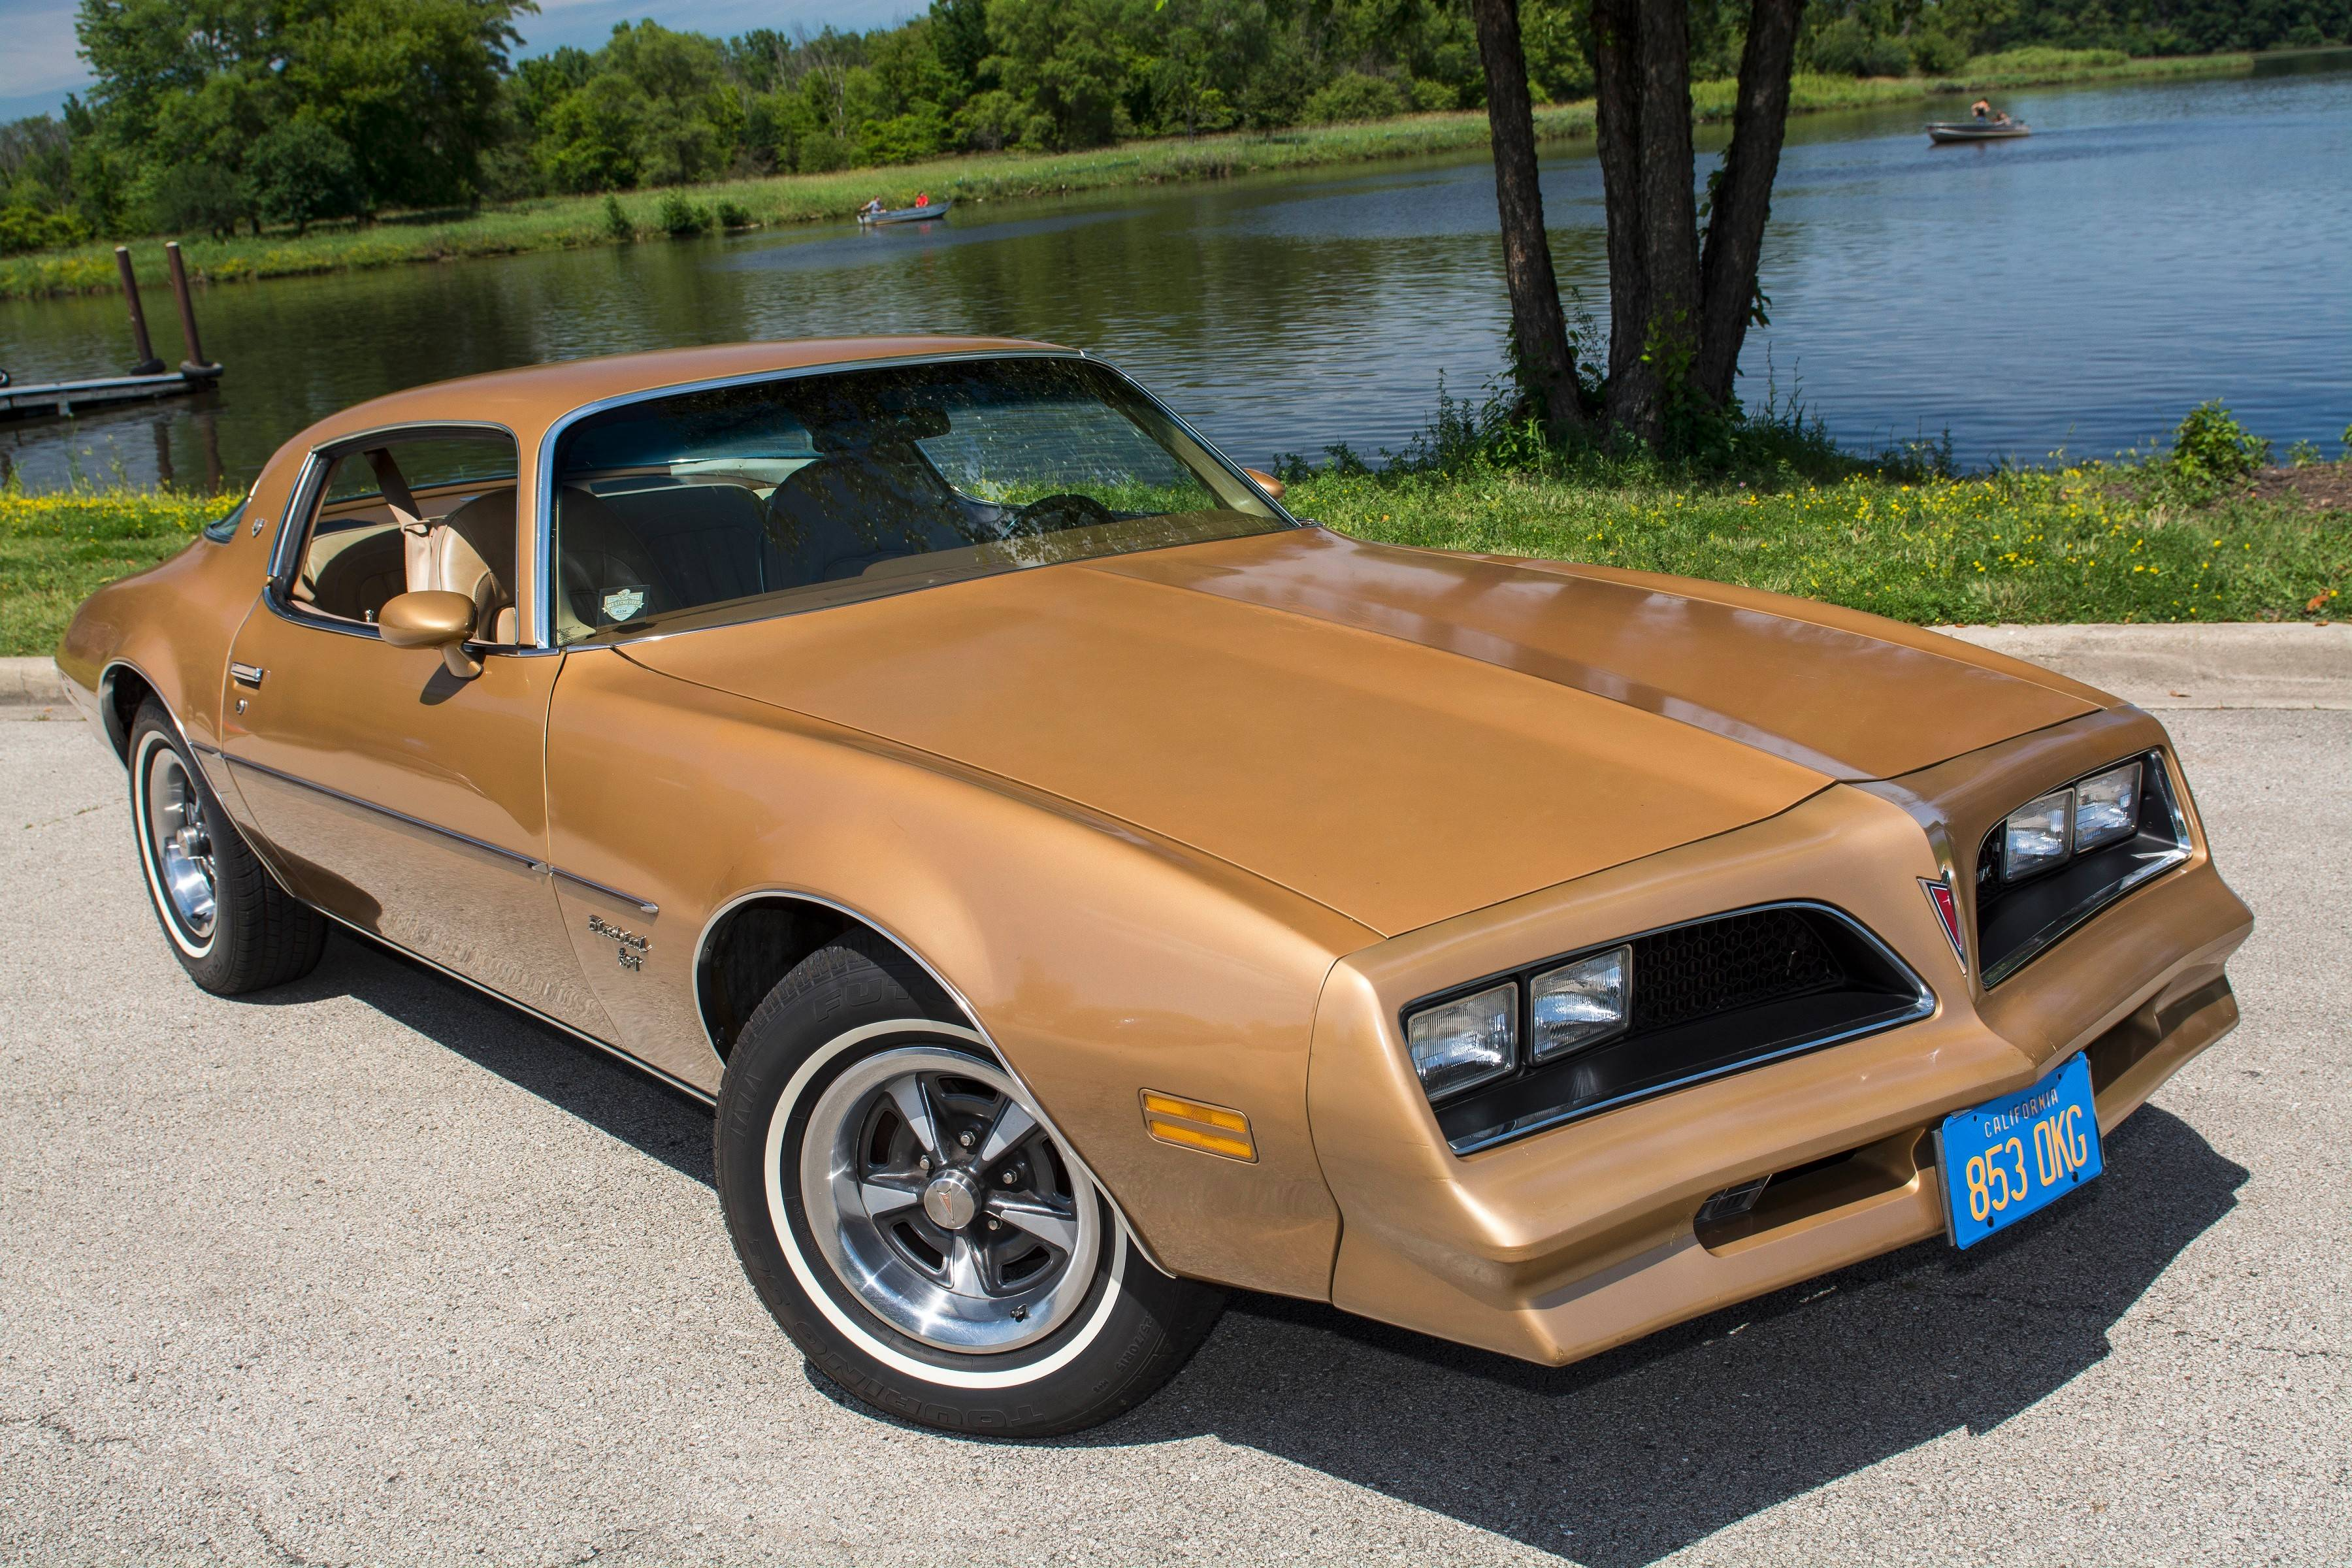 Firebird is an every-man's car with Hollywood charisma